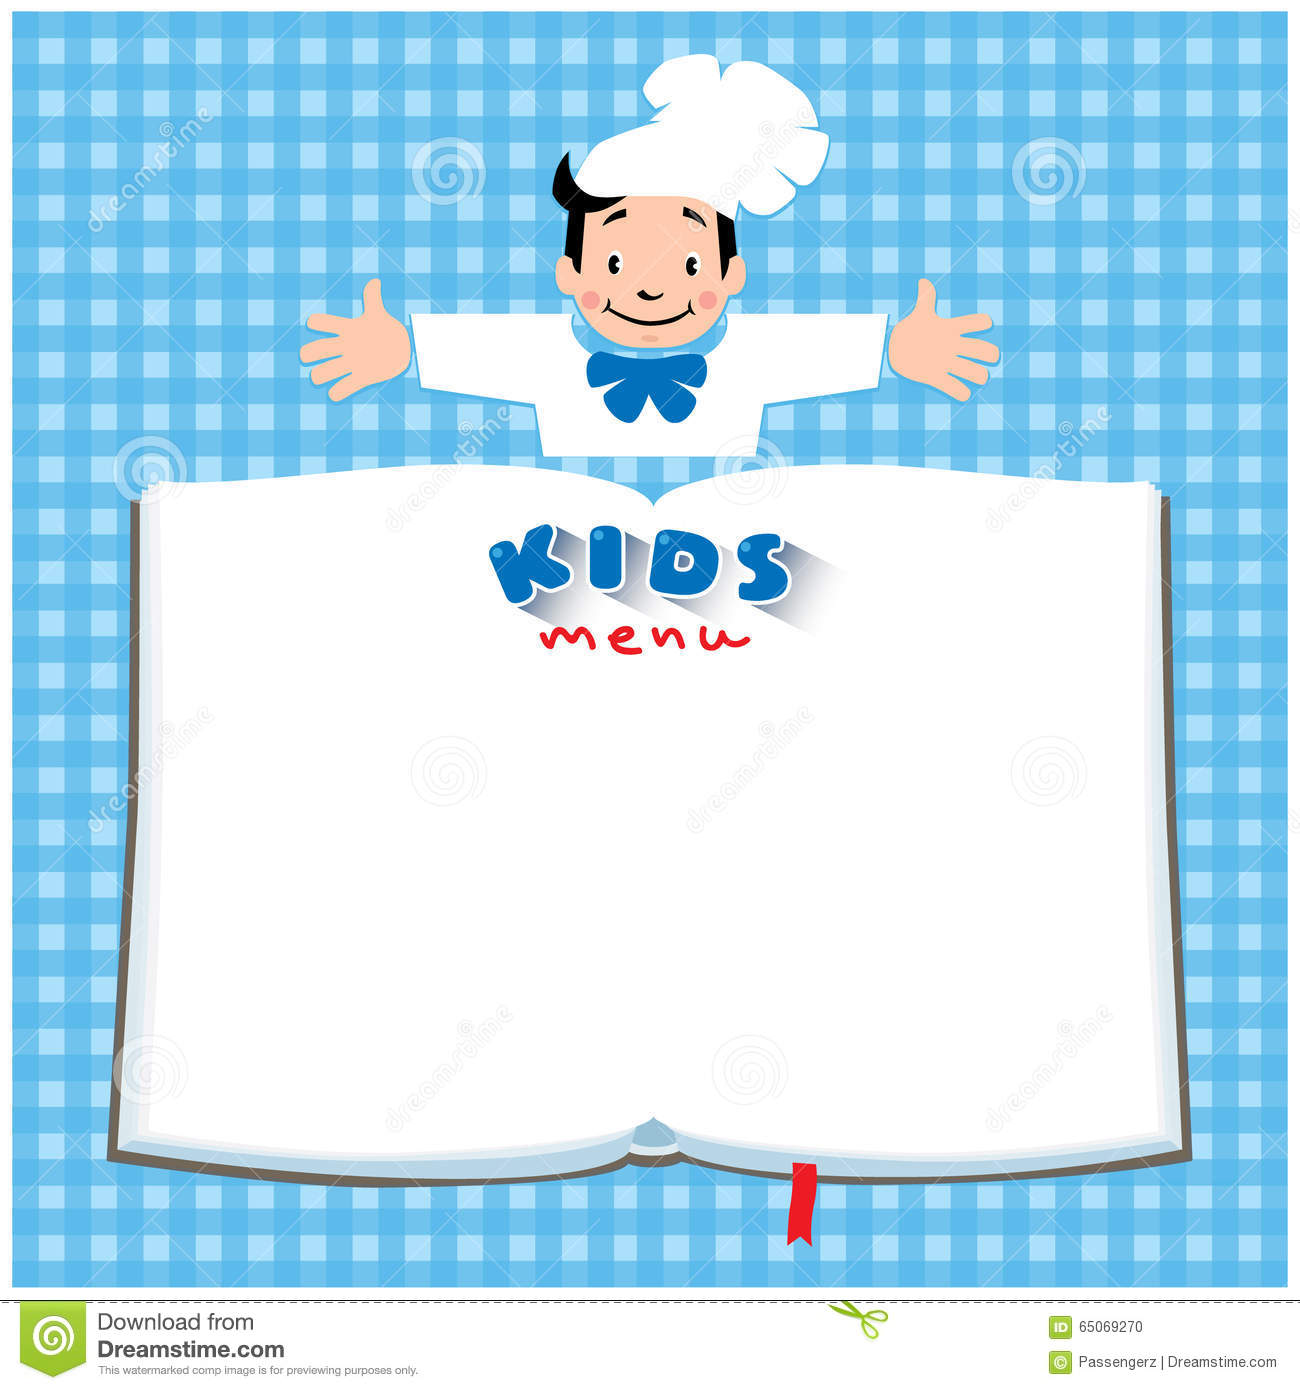 Design Template For Kids Menu With Funny Cook Boy Stock Vector - Image: 65069270